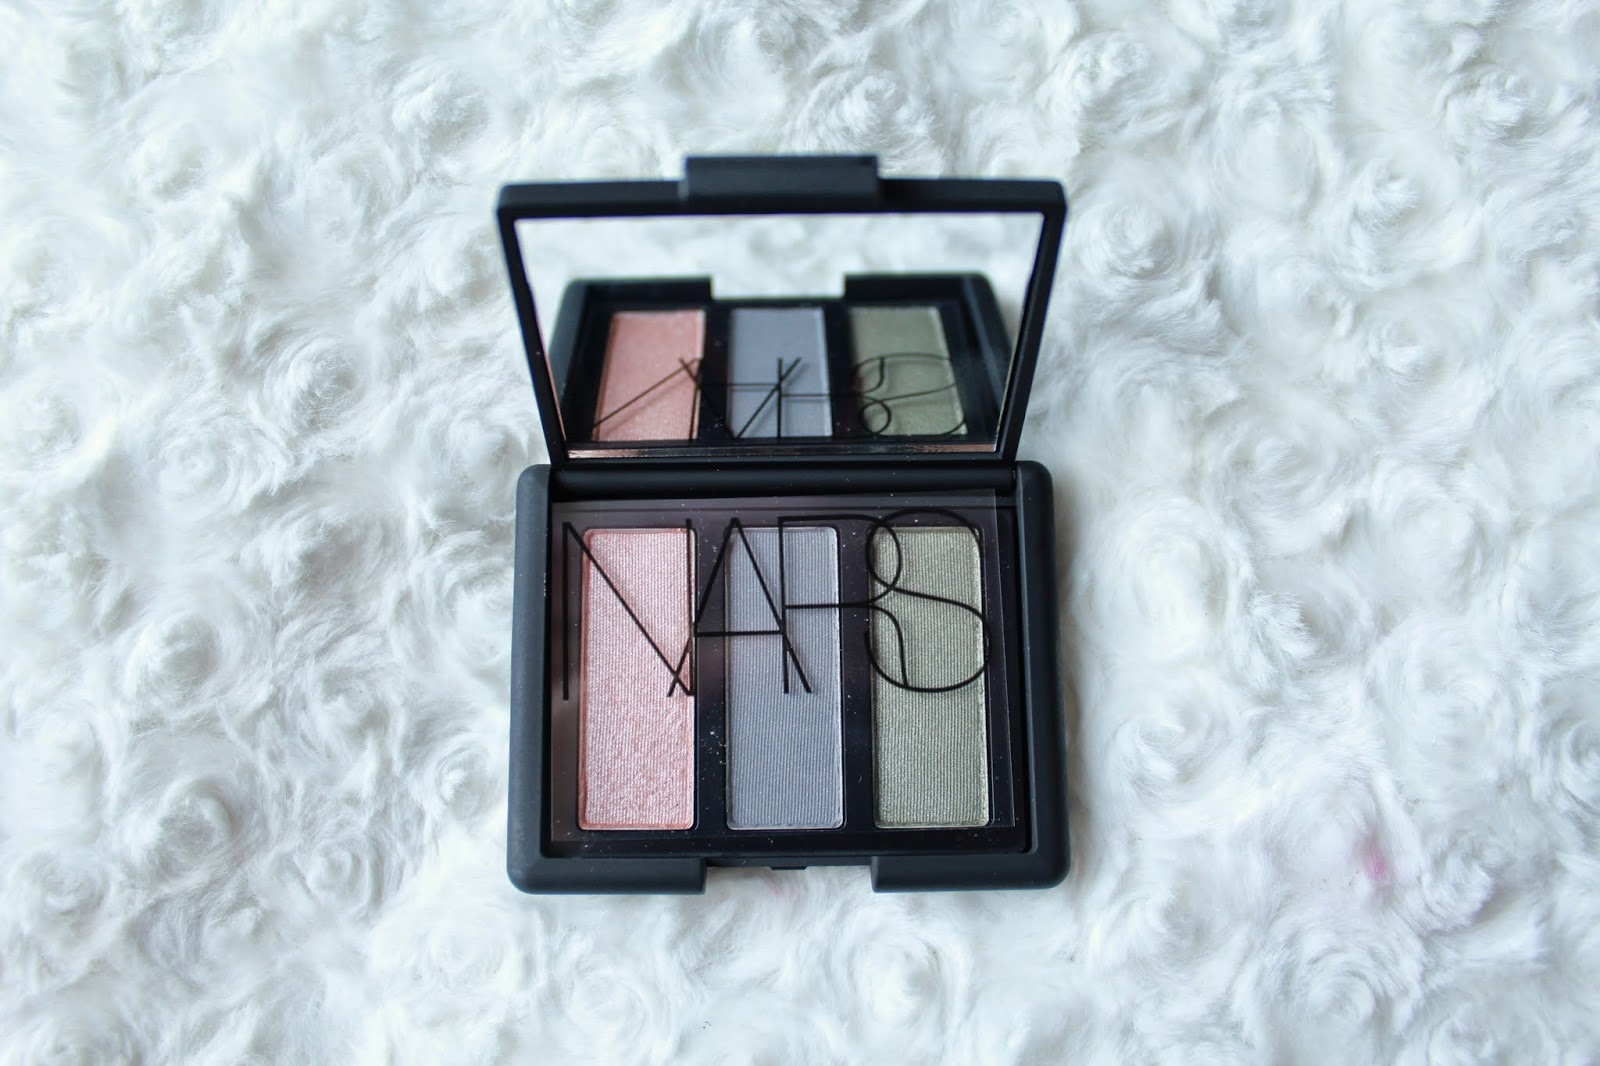 Nars Trio Eyeshadow Palette in Delphes